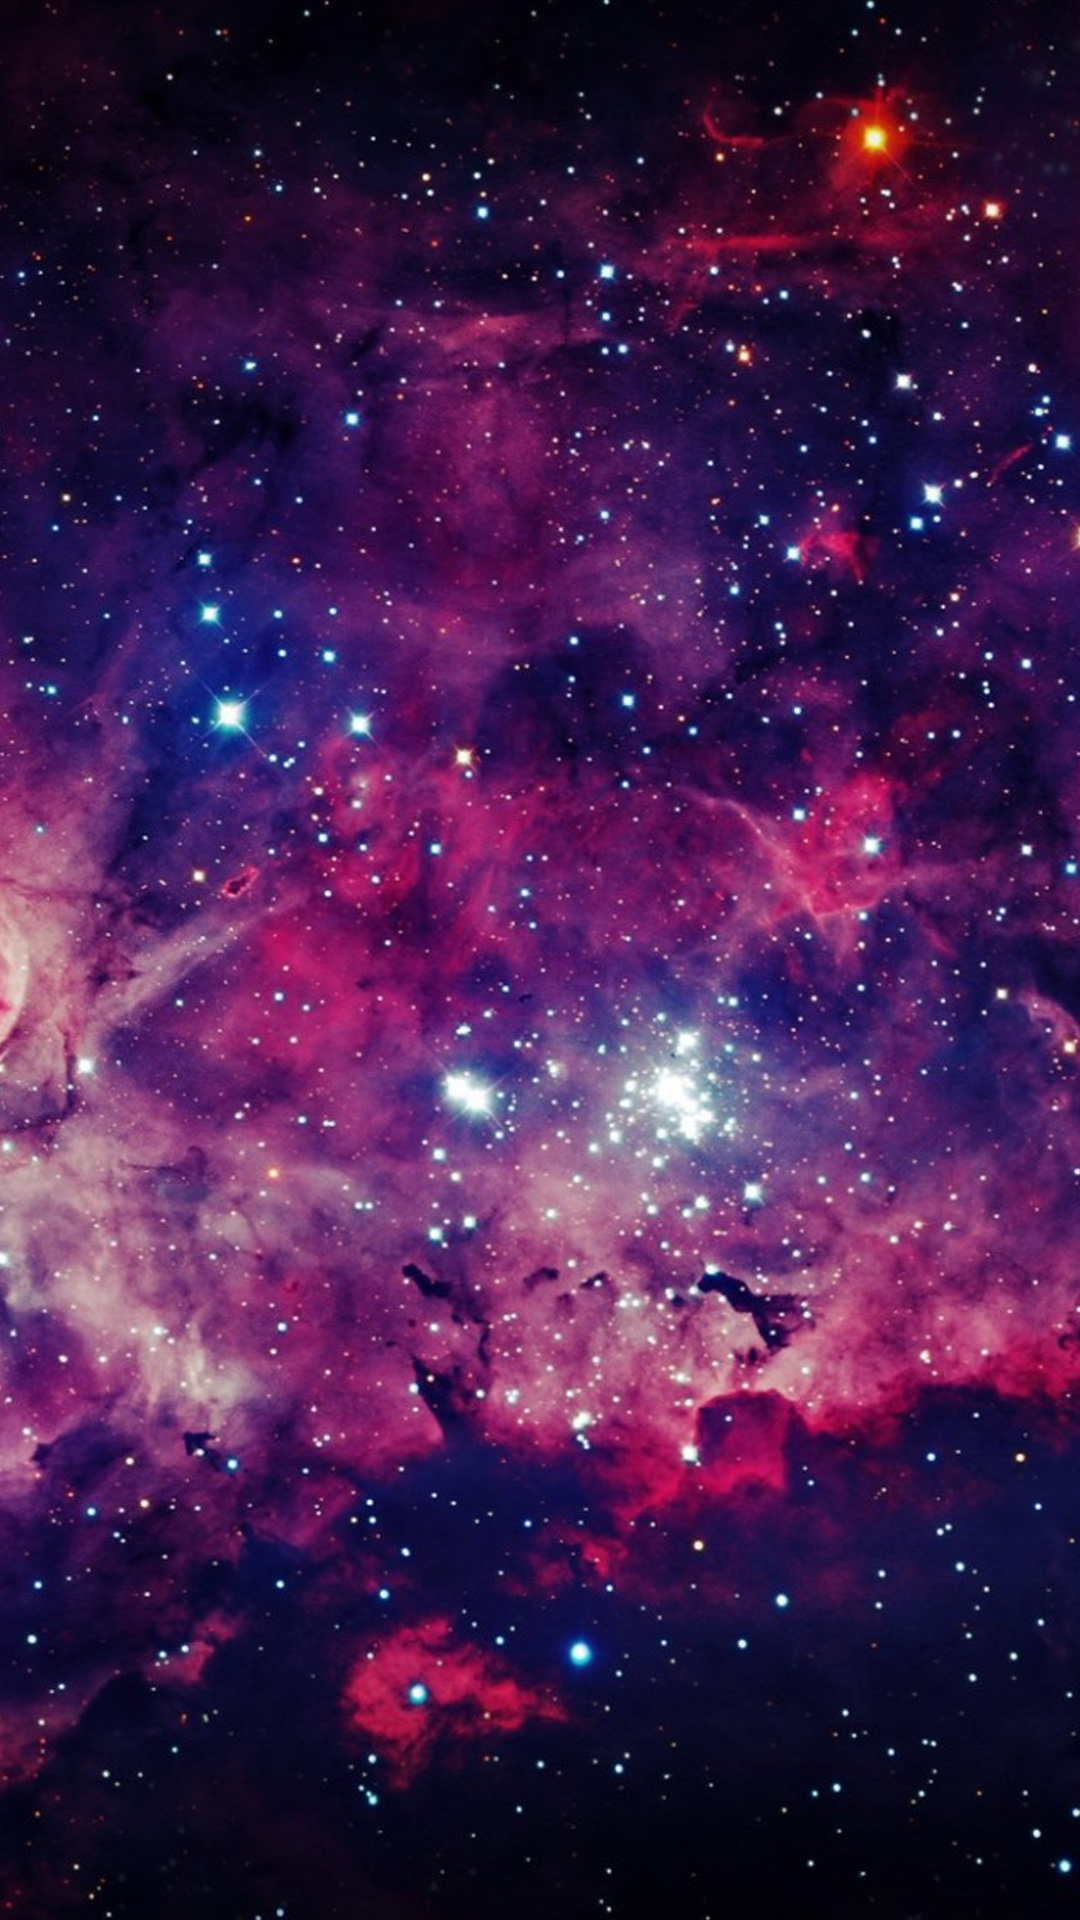 Beautiful galaxy wallpaper ❤️